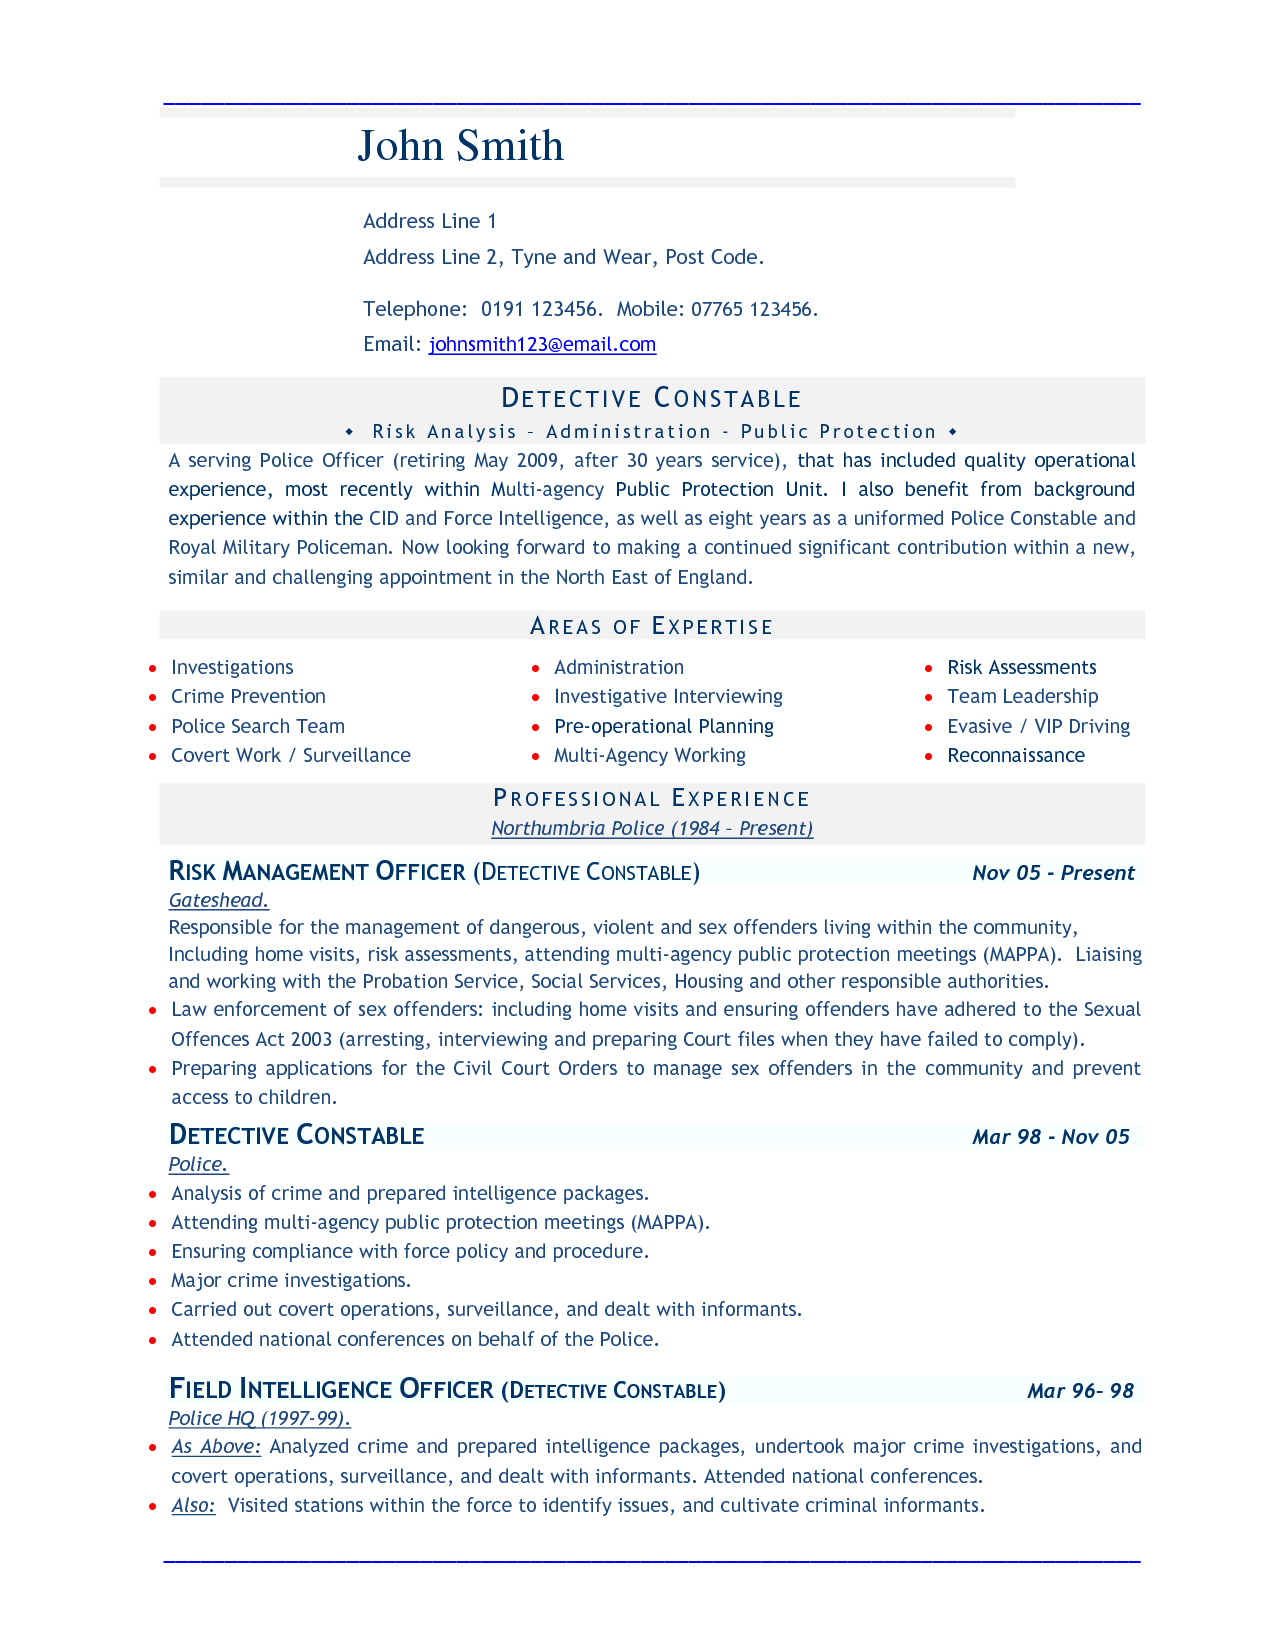 Cover Letter Template Google Docs Download - Resume Templates Microsoft Word Resume Templates Microsoft Word